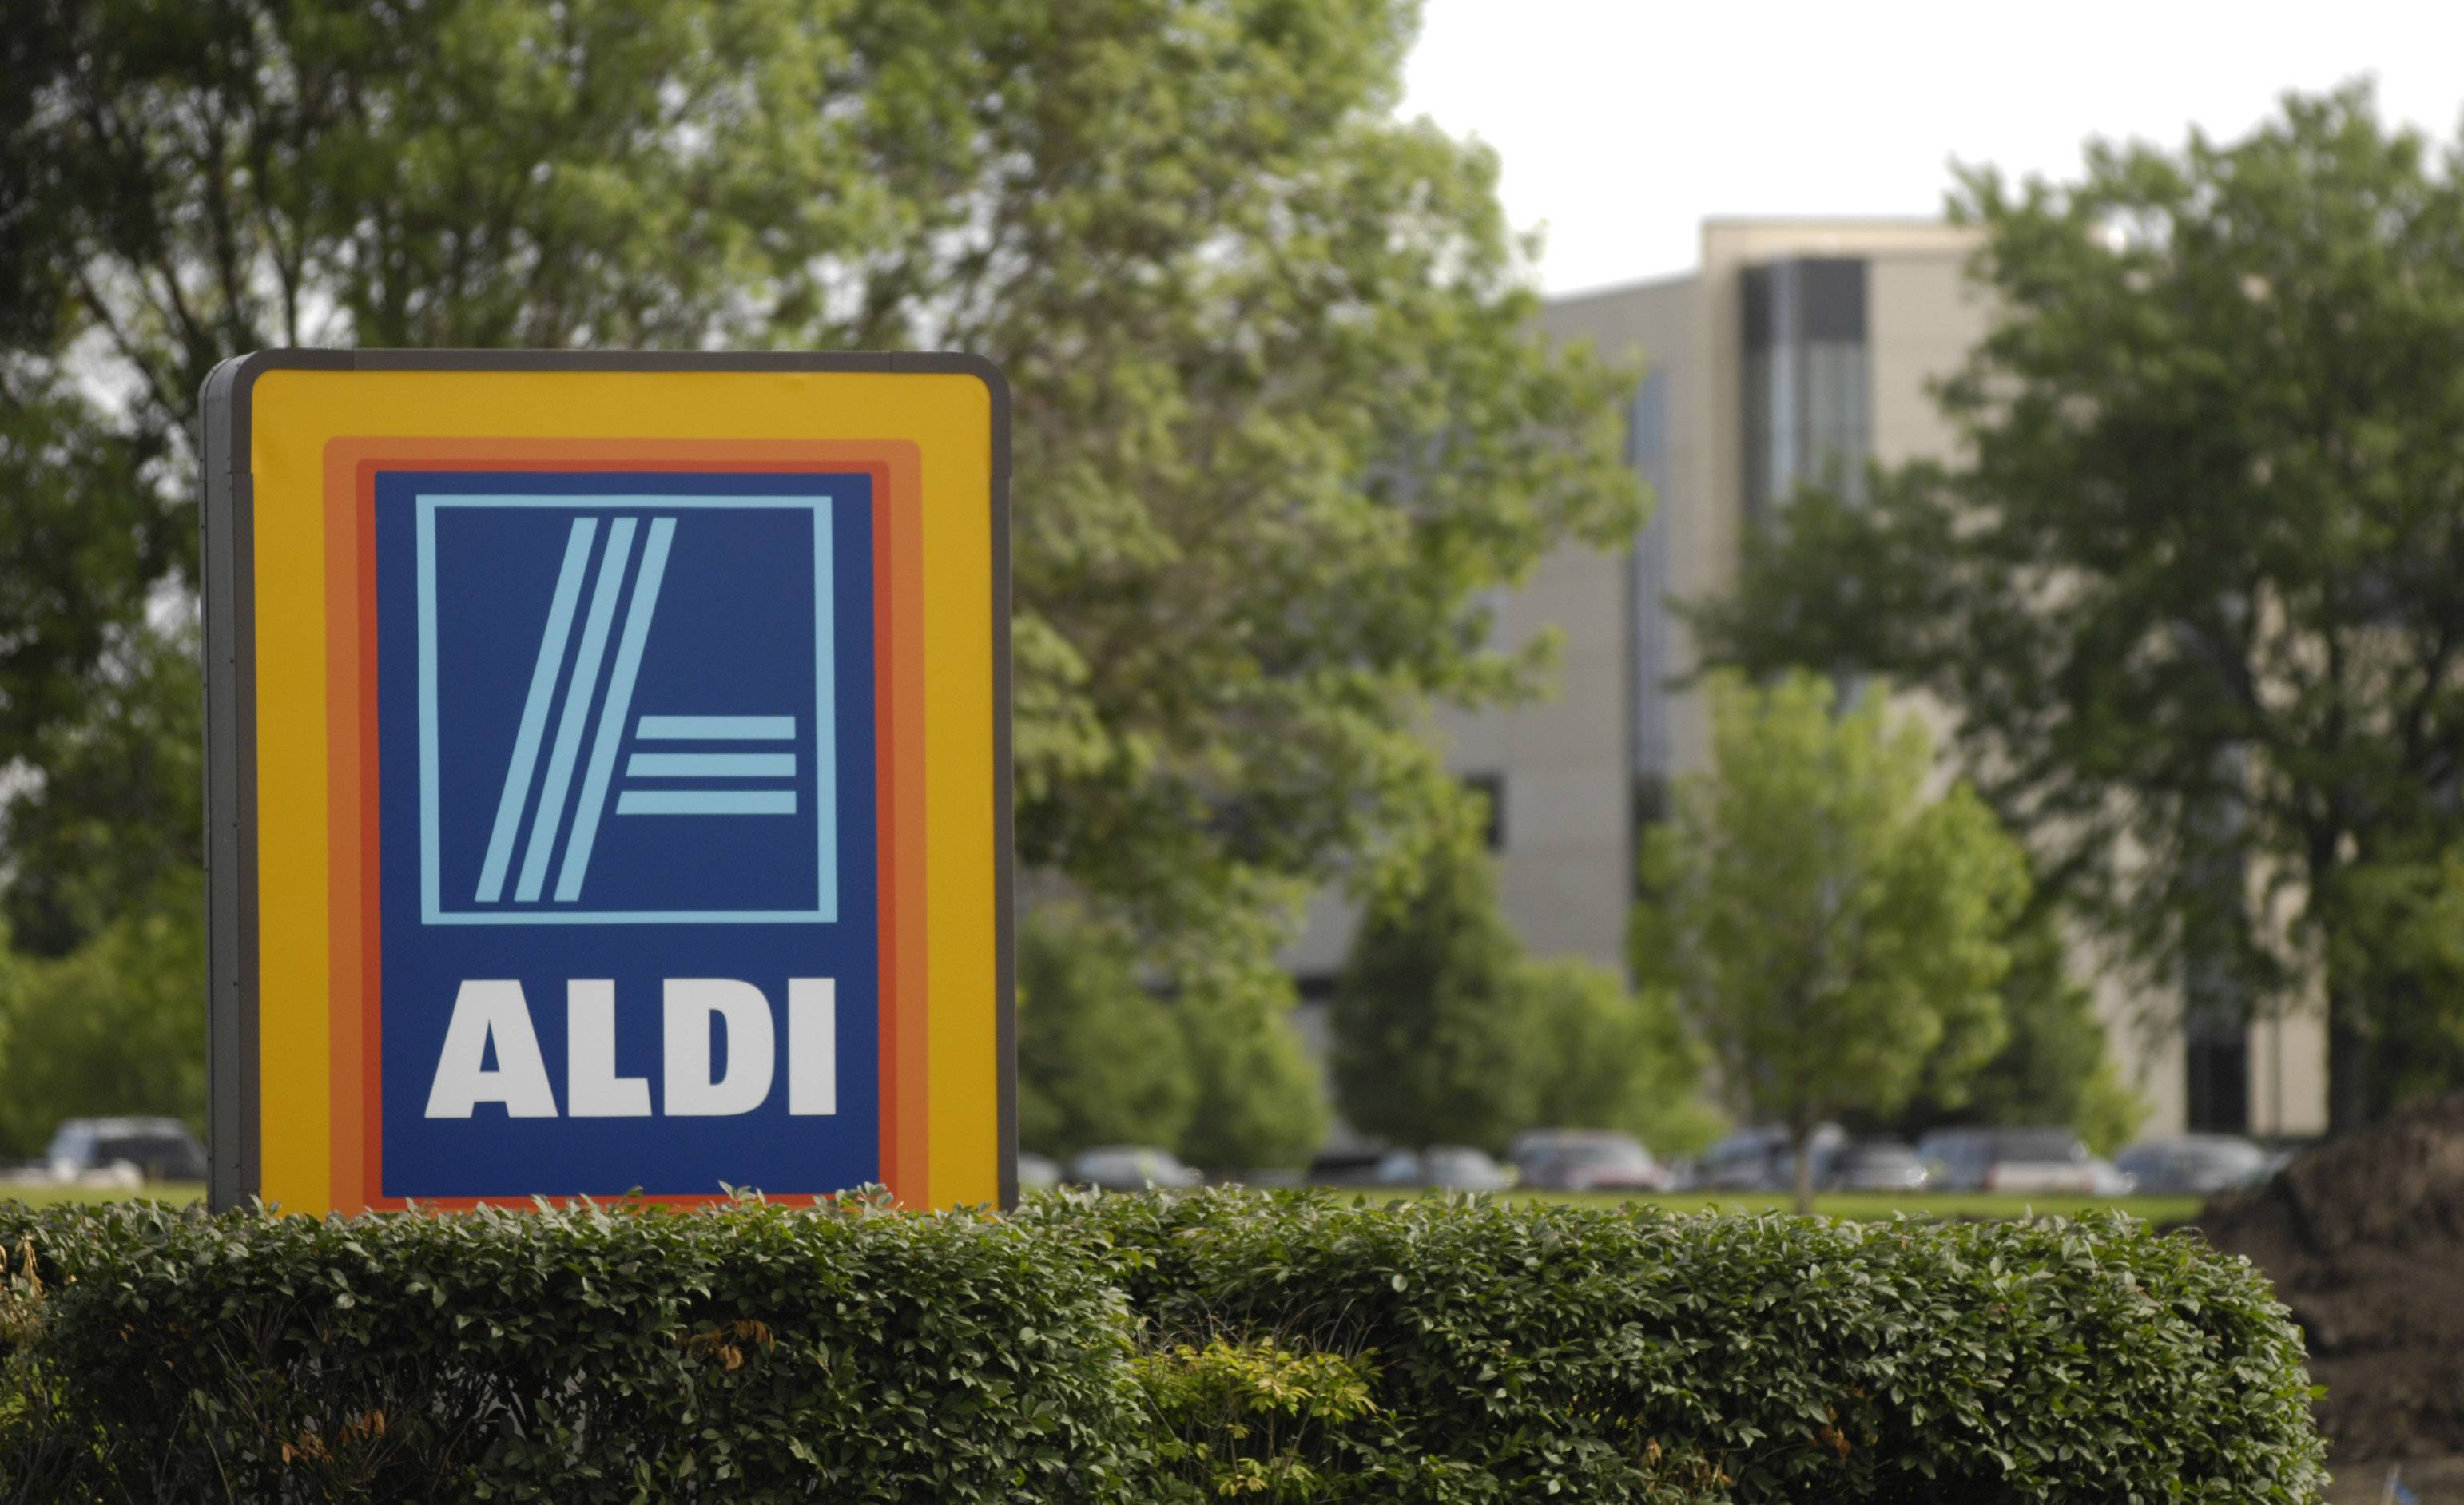 Batavia-based Aldi is opening a new store in the Bucktown neighborhood of Chicago on June 15.